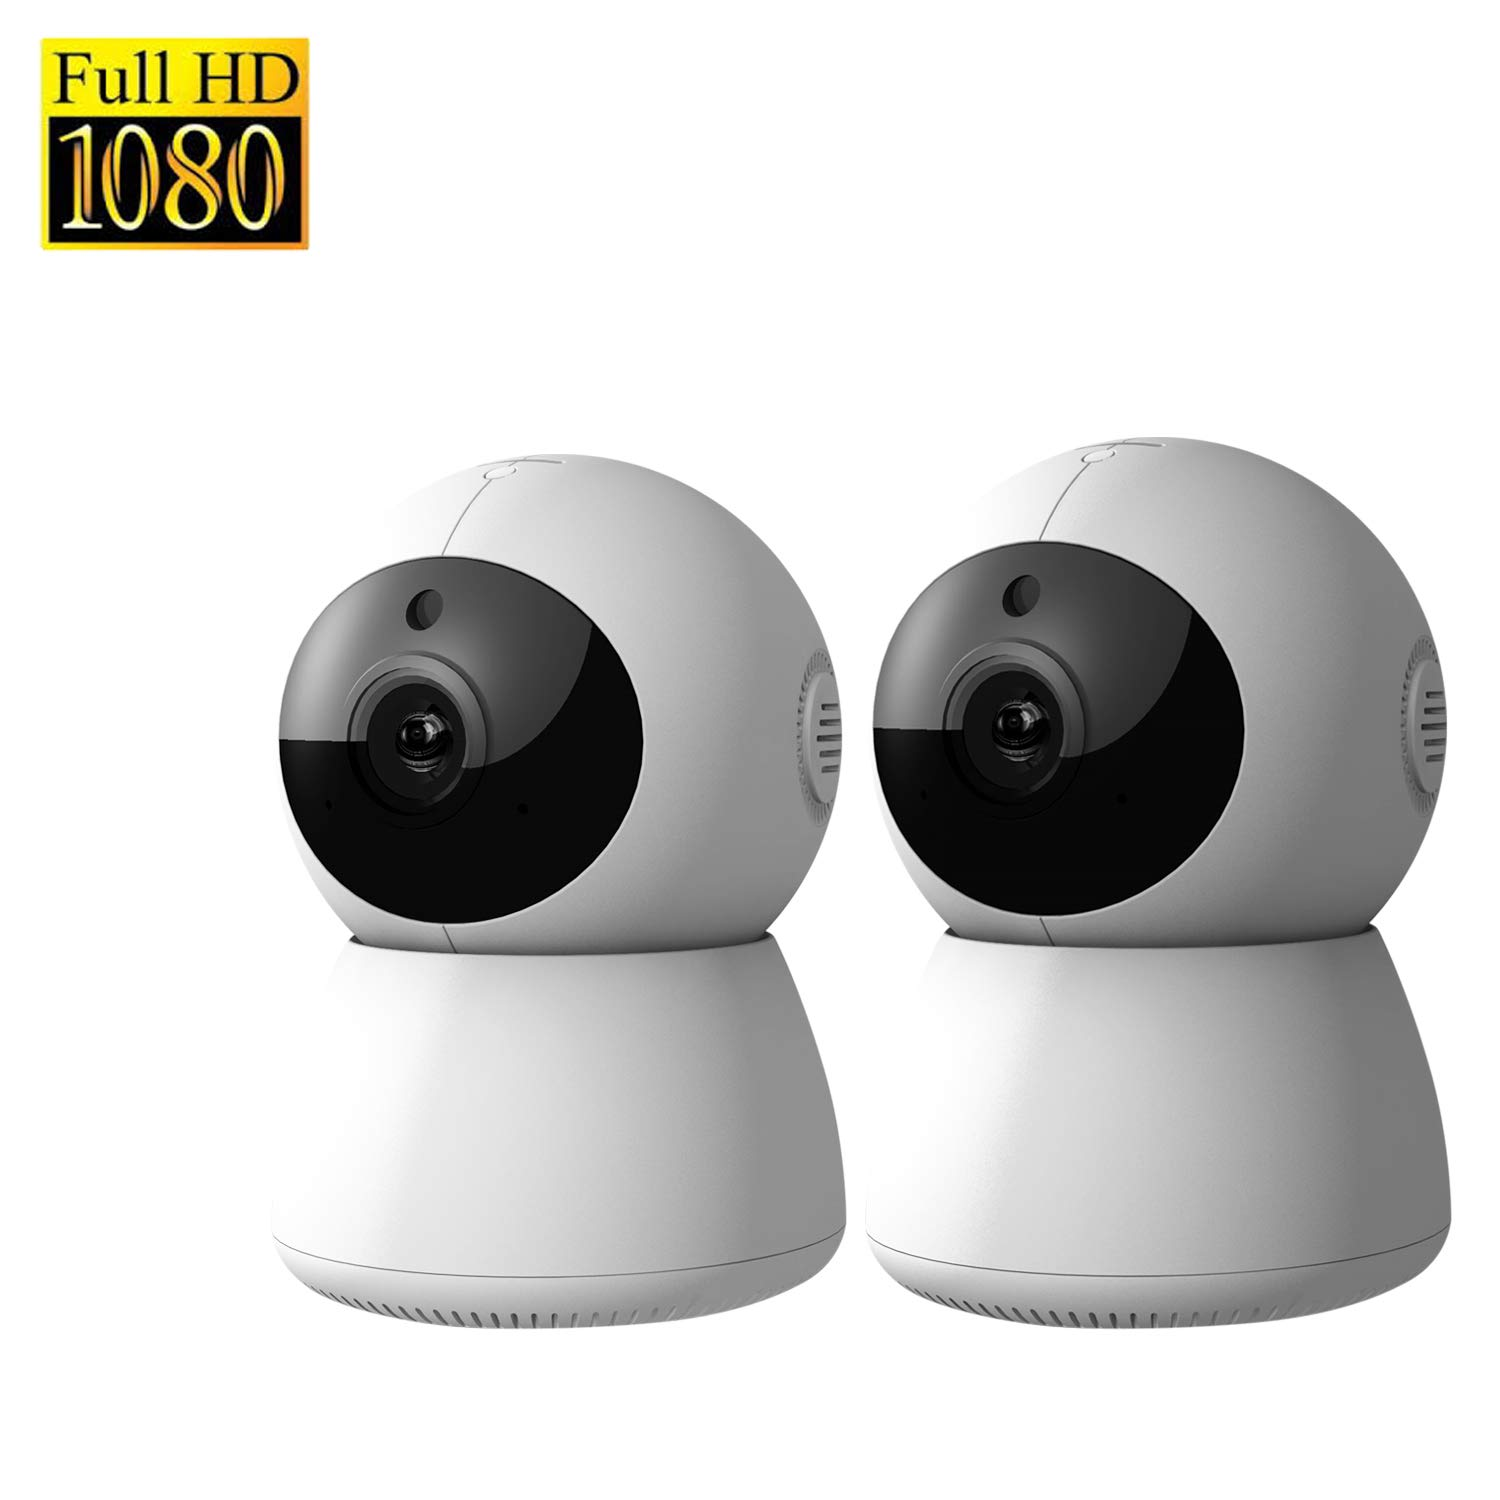 DophiGo 1080P HD Dome 360° Wireless WiFi Baby Monitor Safety Home Security Surveillance IP Cloud Cam Night Vision Camera for Baby Pet Android iOS apps by DOPHIGO